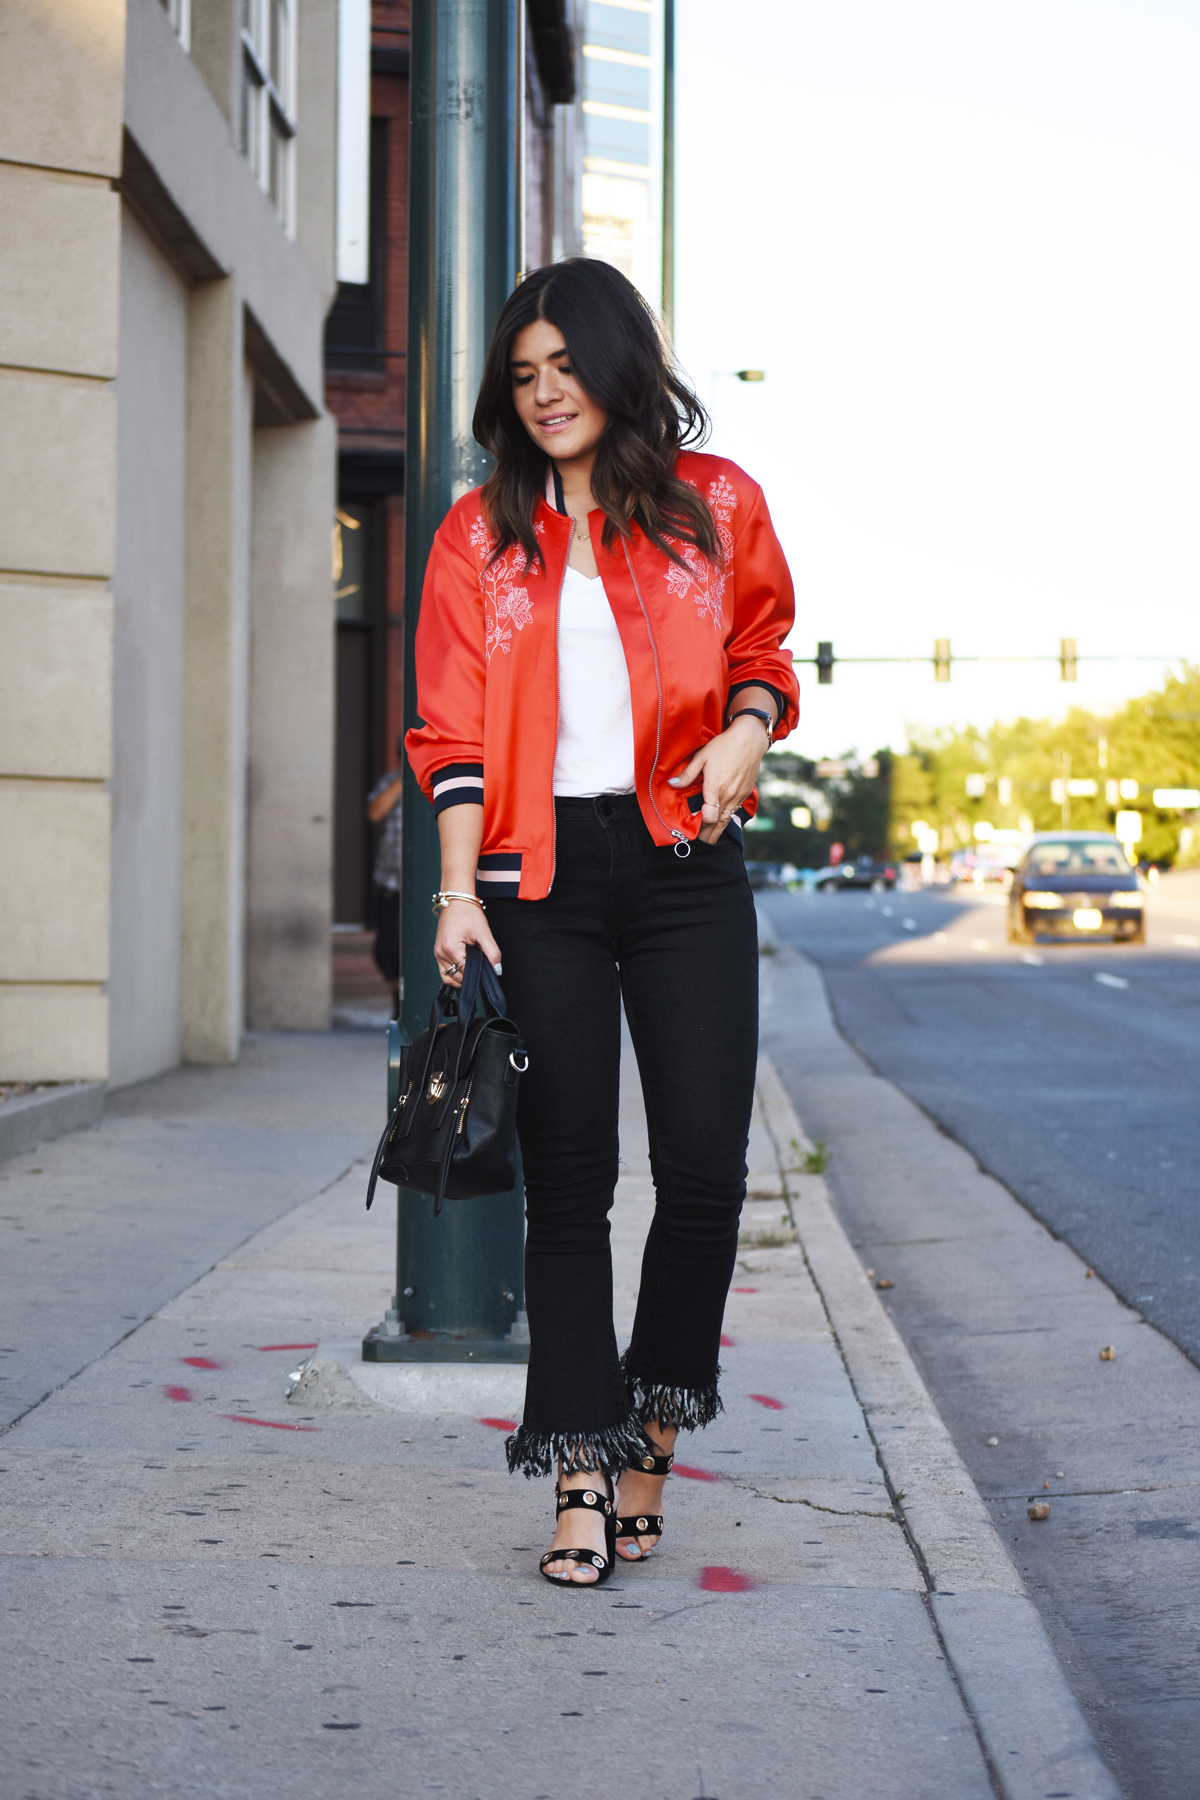 Carolina Hellal of Chic Talk wearing a red H&M Bomber jacket, Dezzal fringed jeans, and Public Desire black sandals